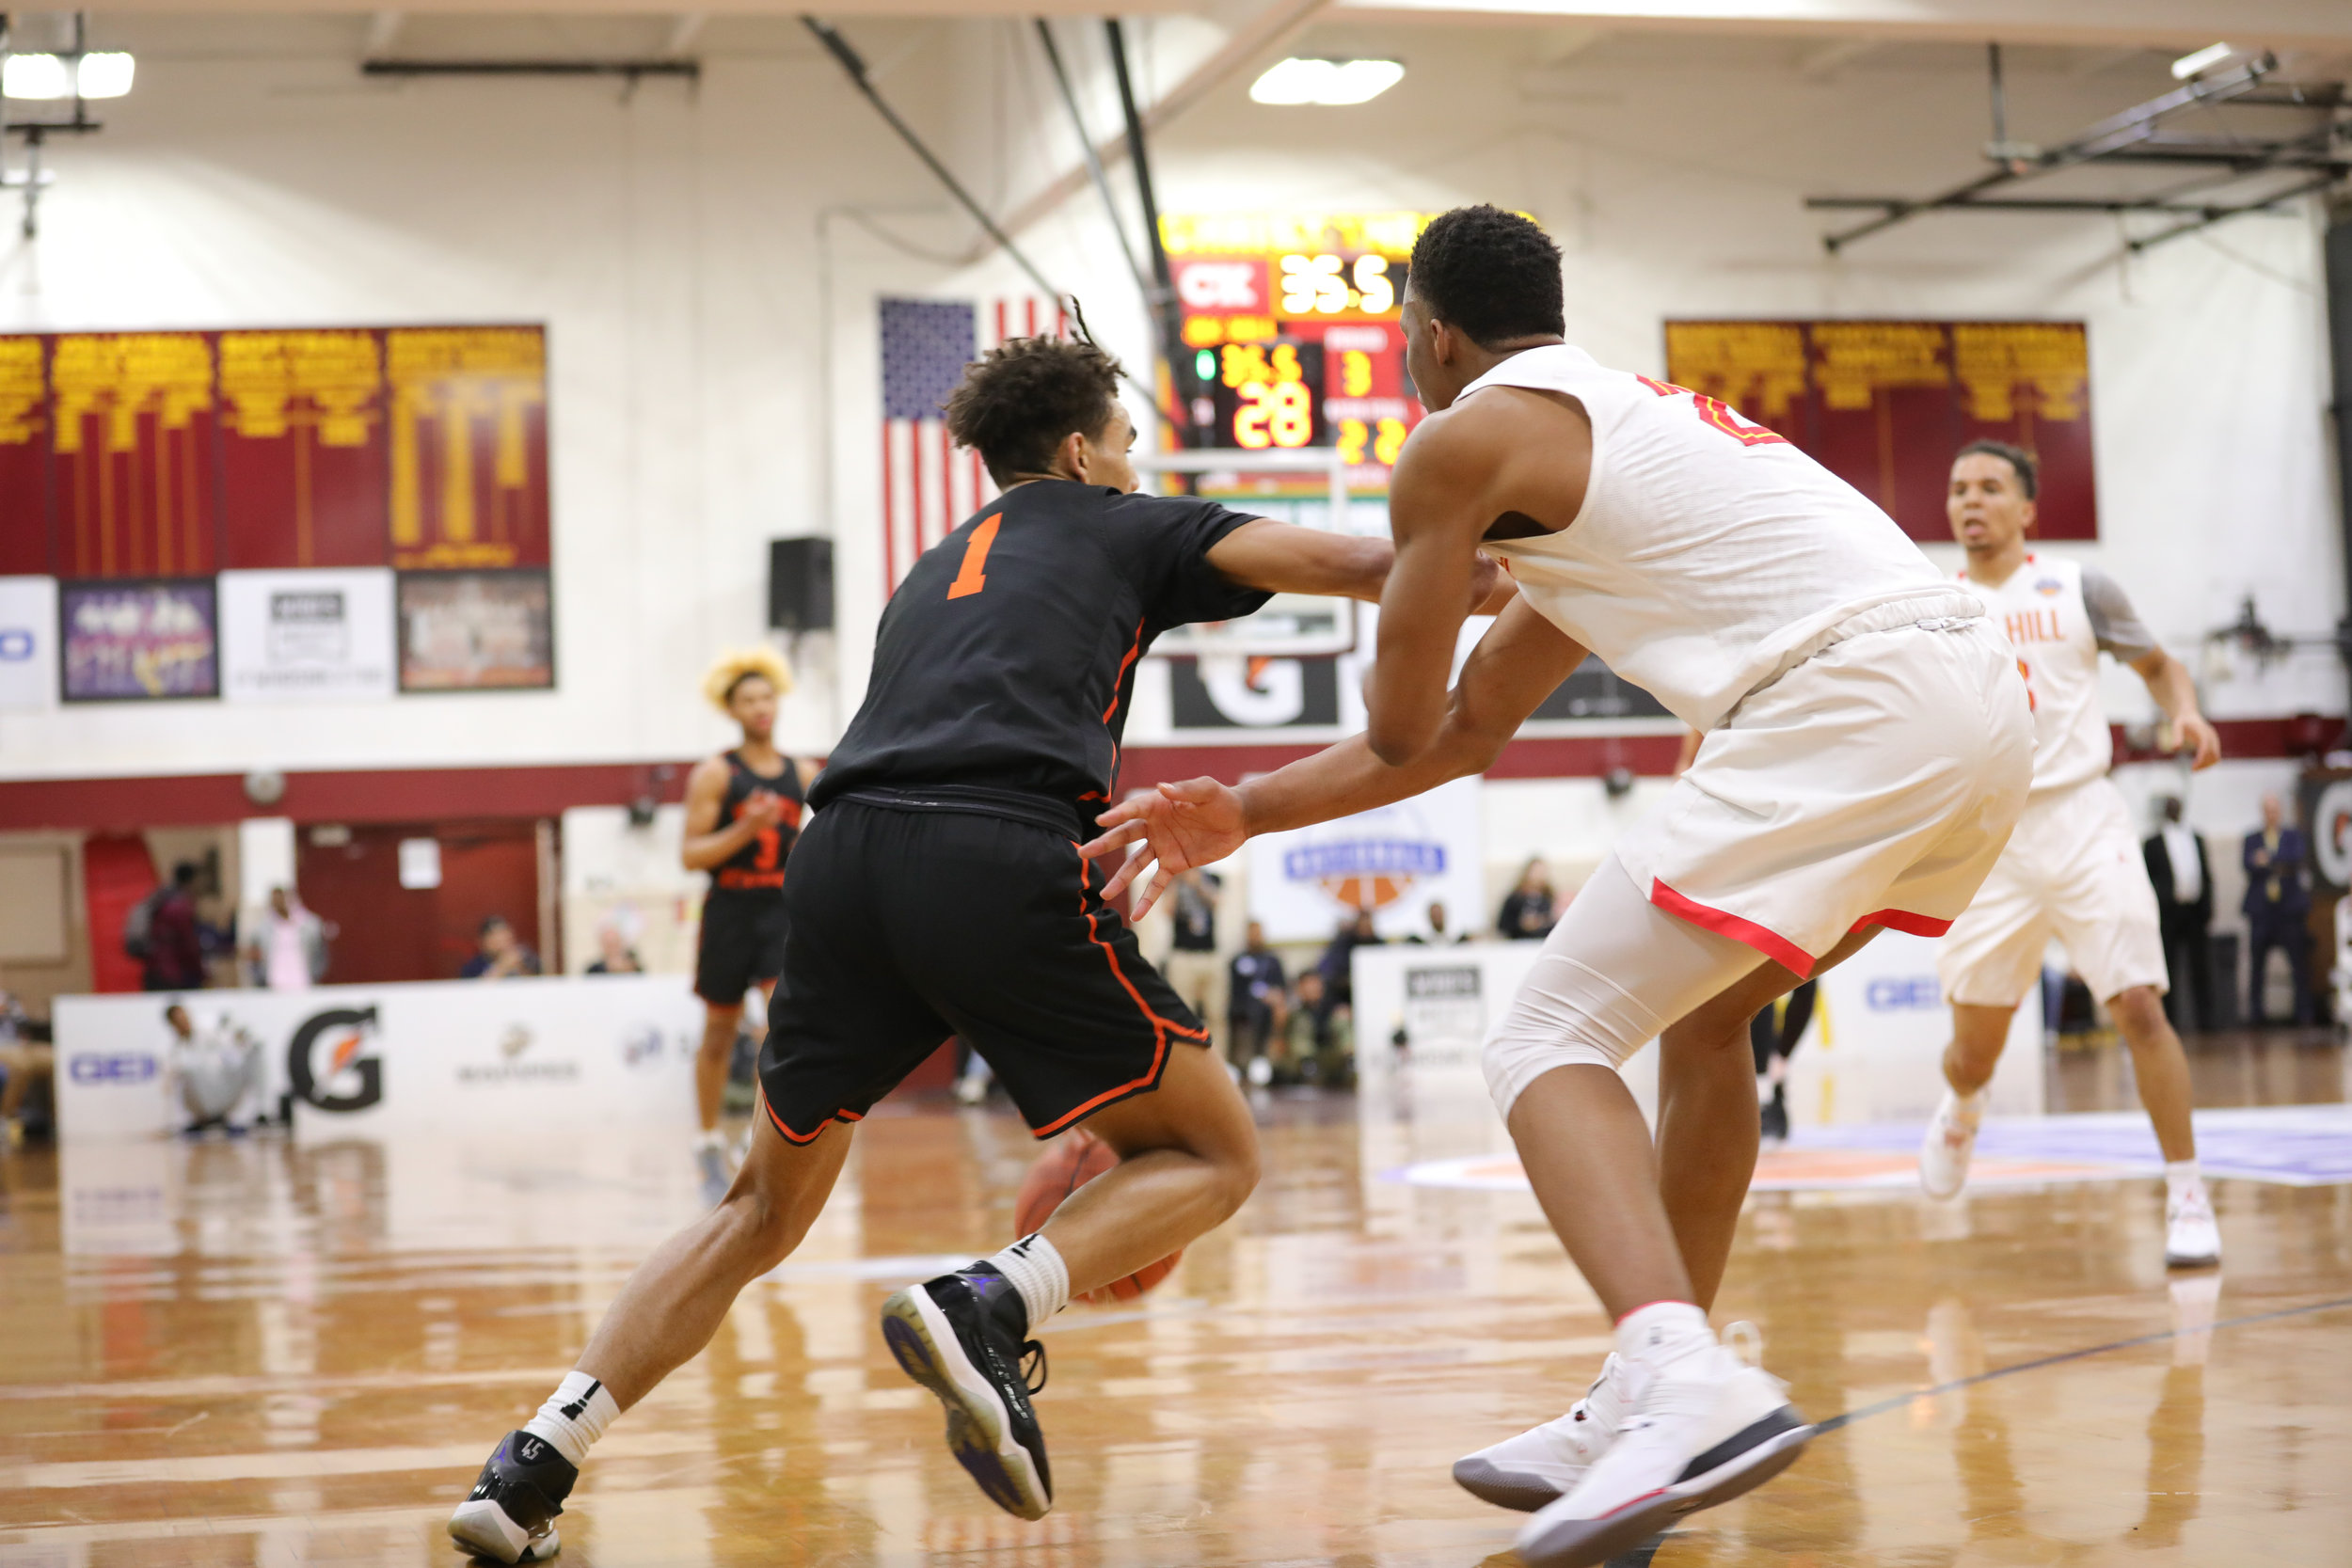 BBall_Geico_Nationals_2019 (41 of 59).jpg